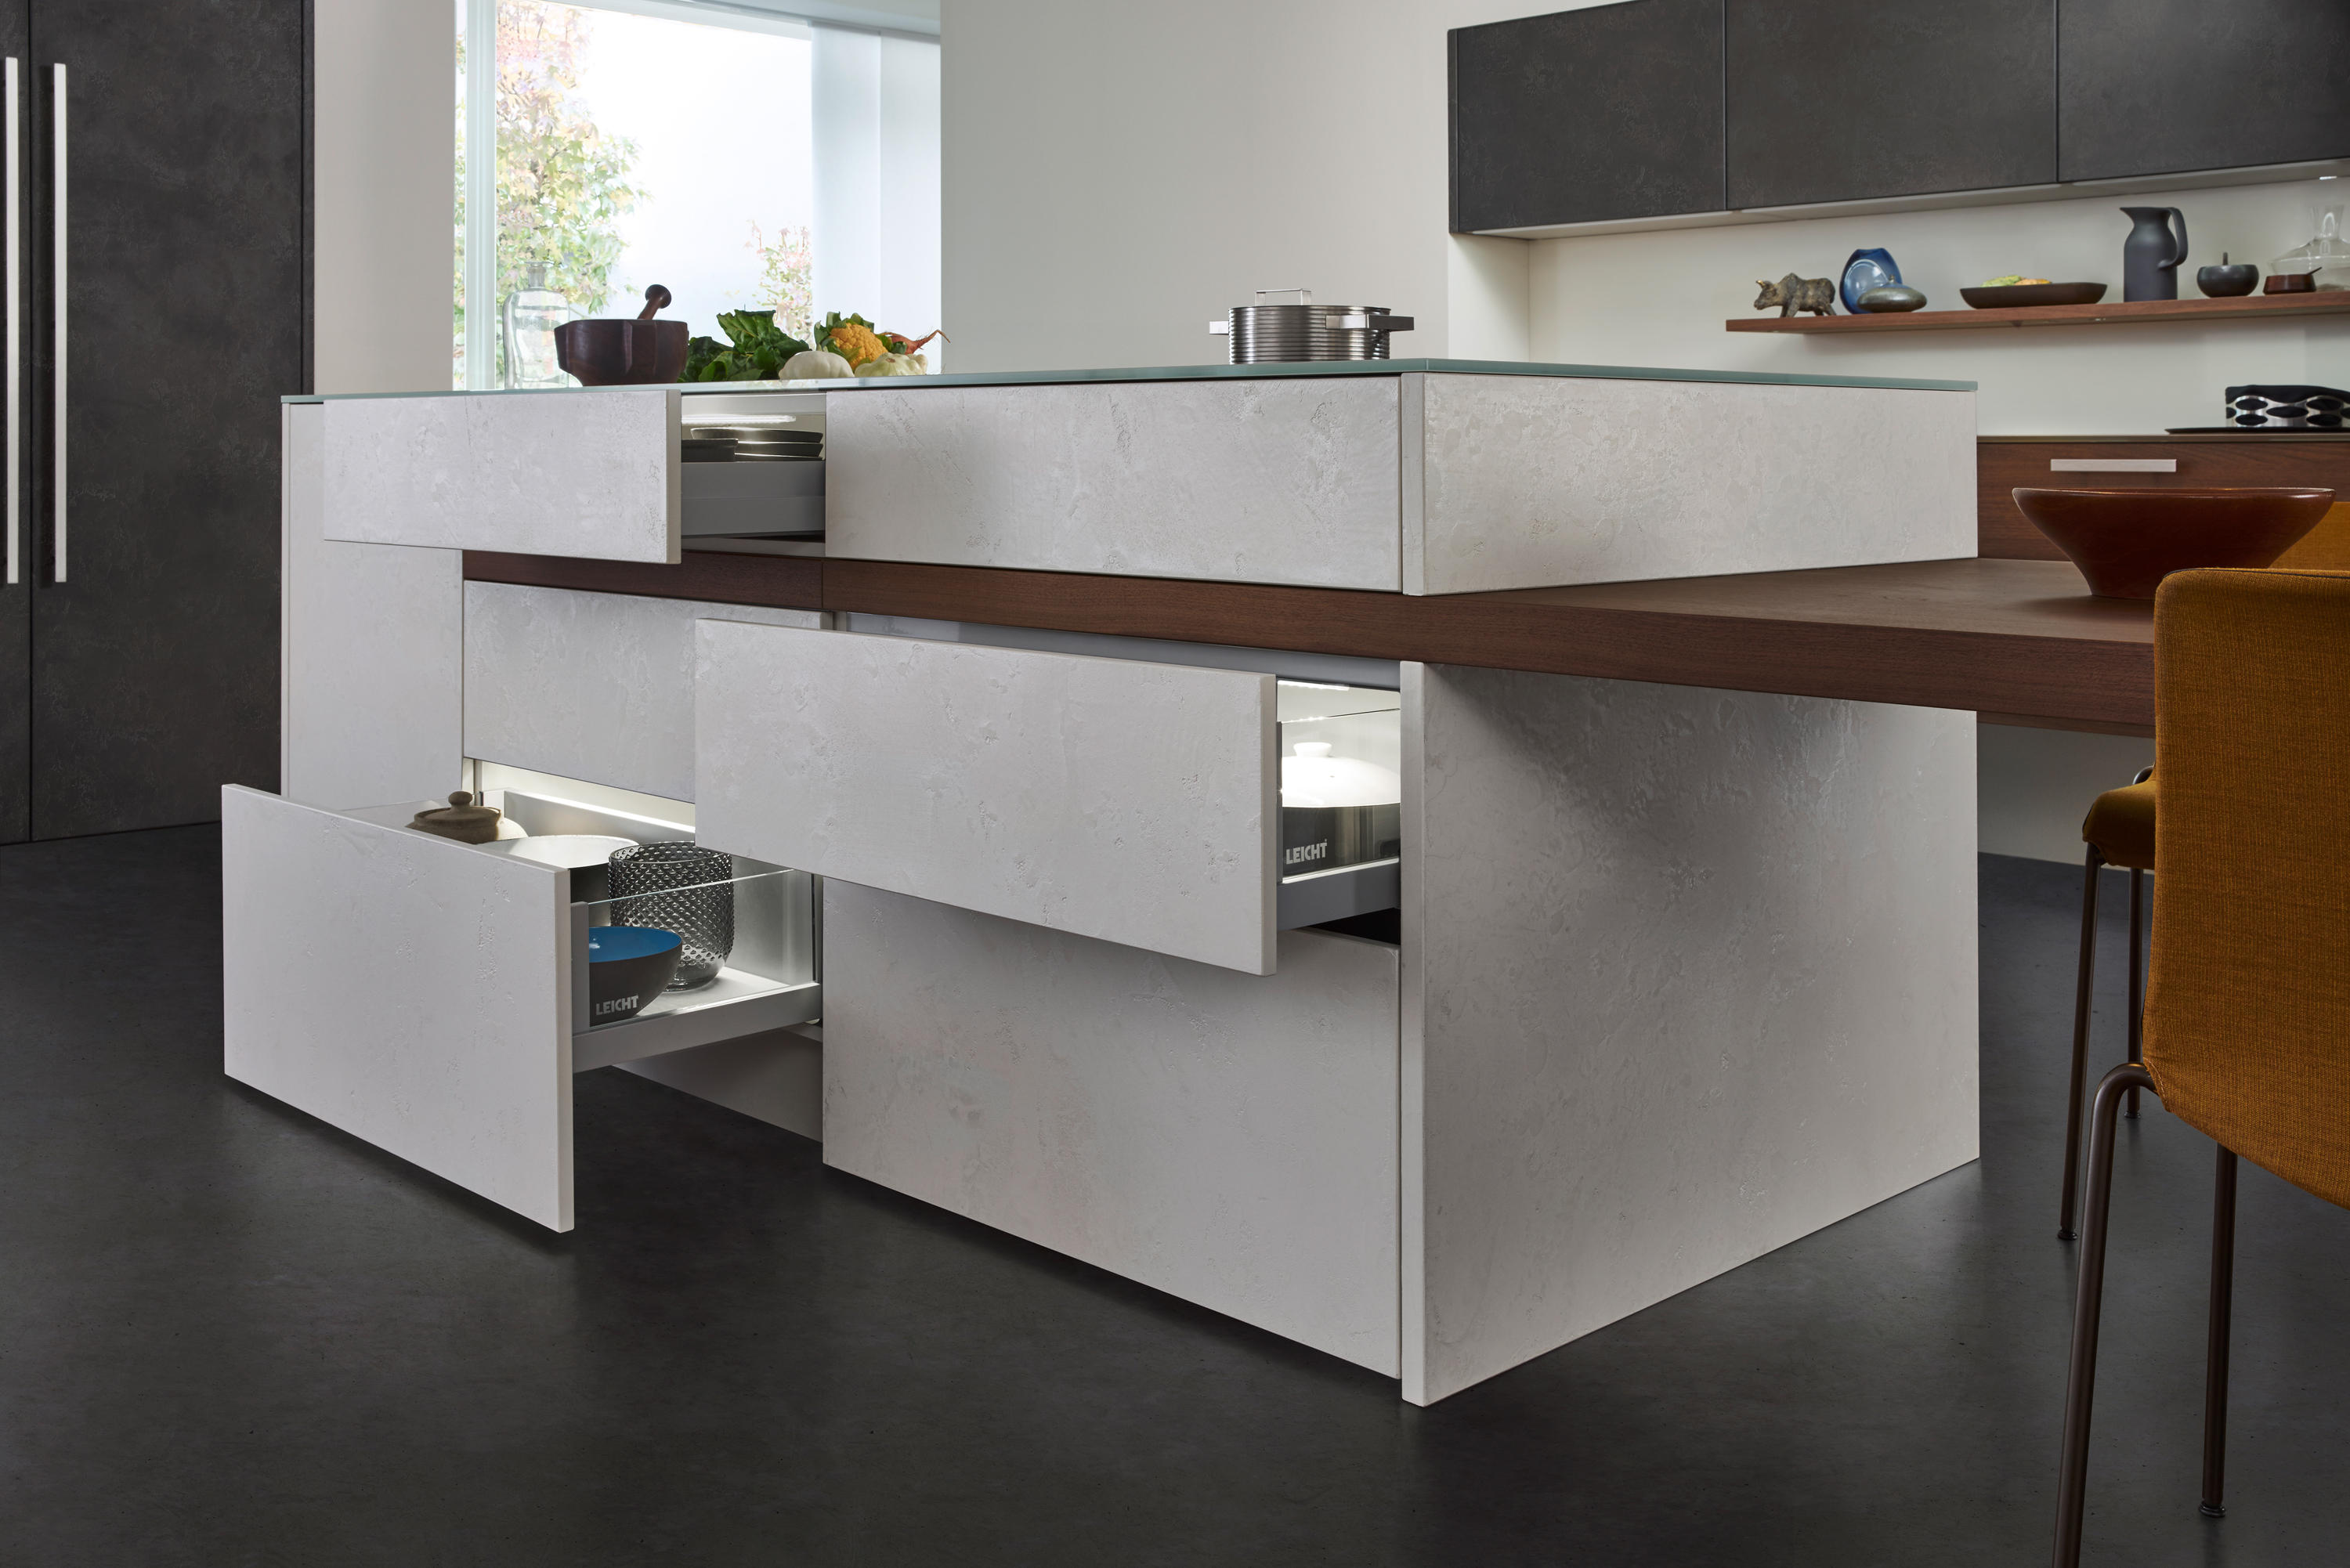 topos concrete fitted kitchens from leicht k chen ag architonic. Black Bedroom Furniture Sets. Home Design Ideas